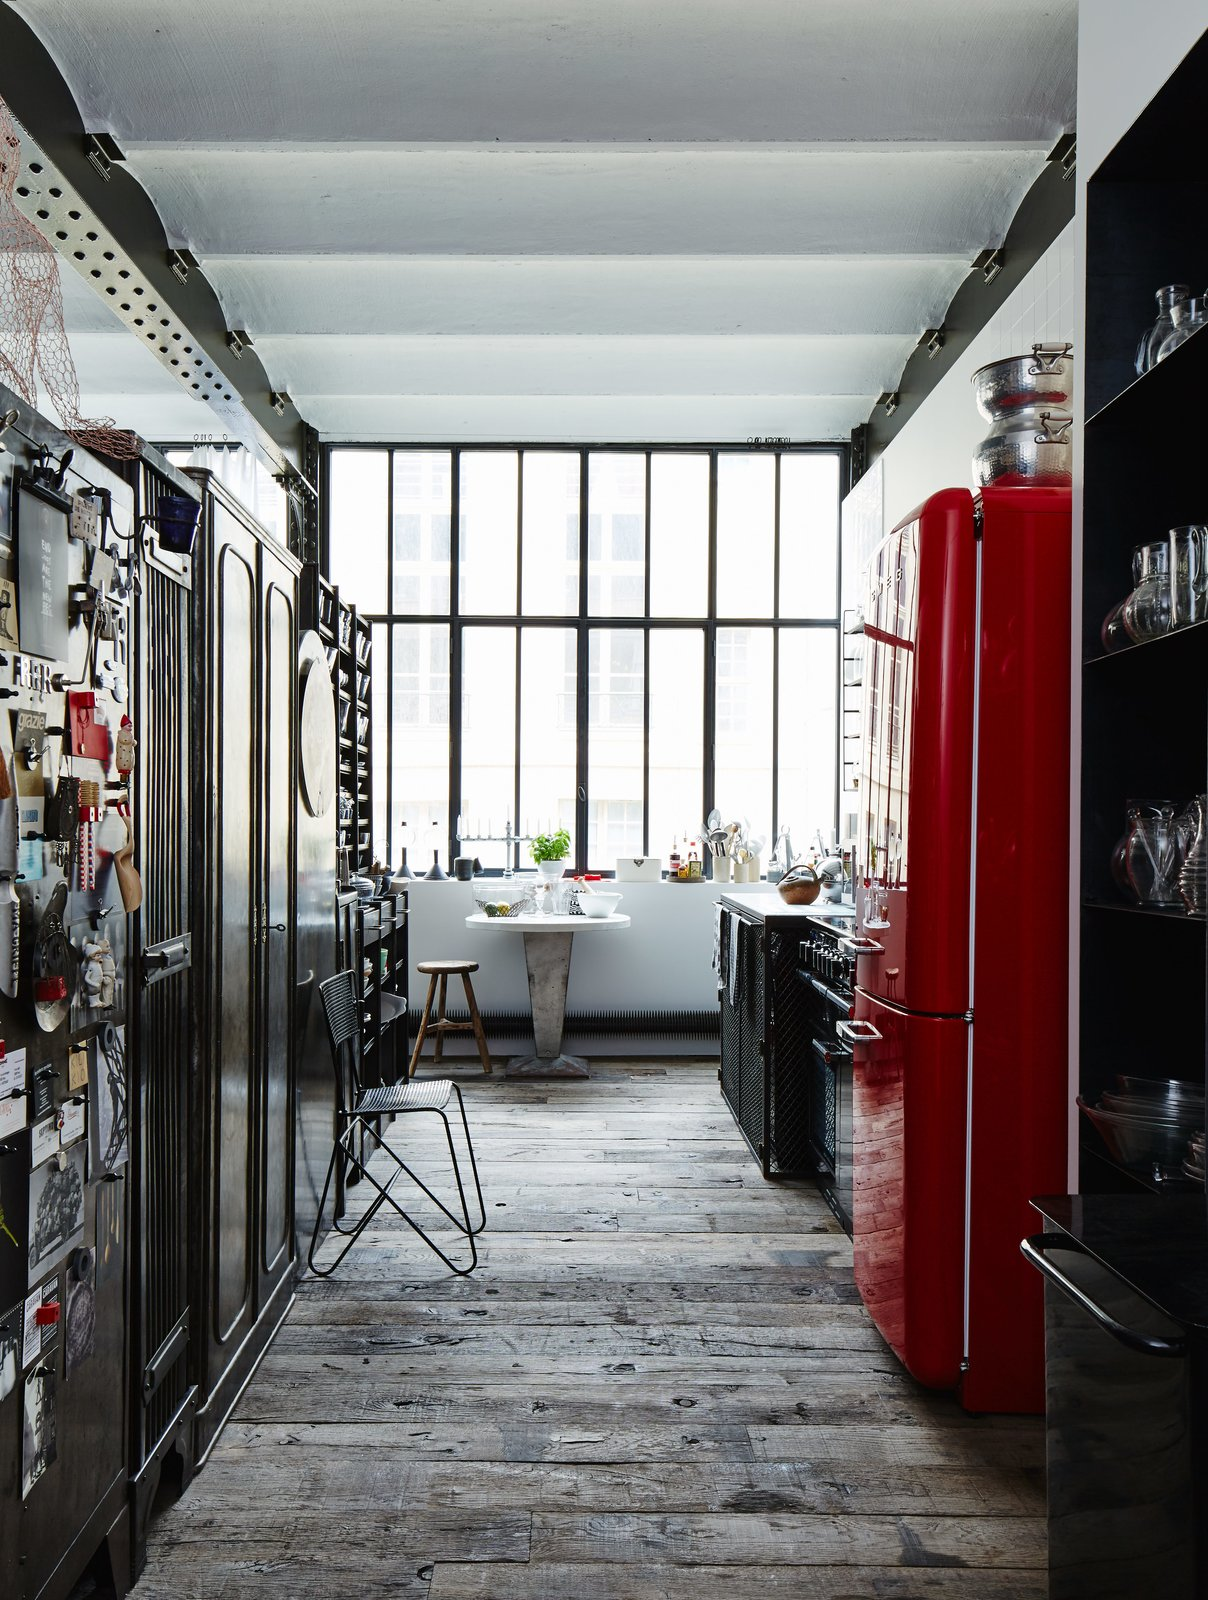 Kitchen, Refrigerator, and Medium Hardwood Floor A Smeg refrigerator is one of a series of red accents that punctuate the black-and-white space.  Photo 5 of 10 in Tour a 17th-Century Paris Loft Overflowing with Vintage Items